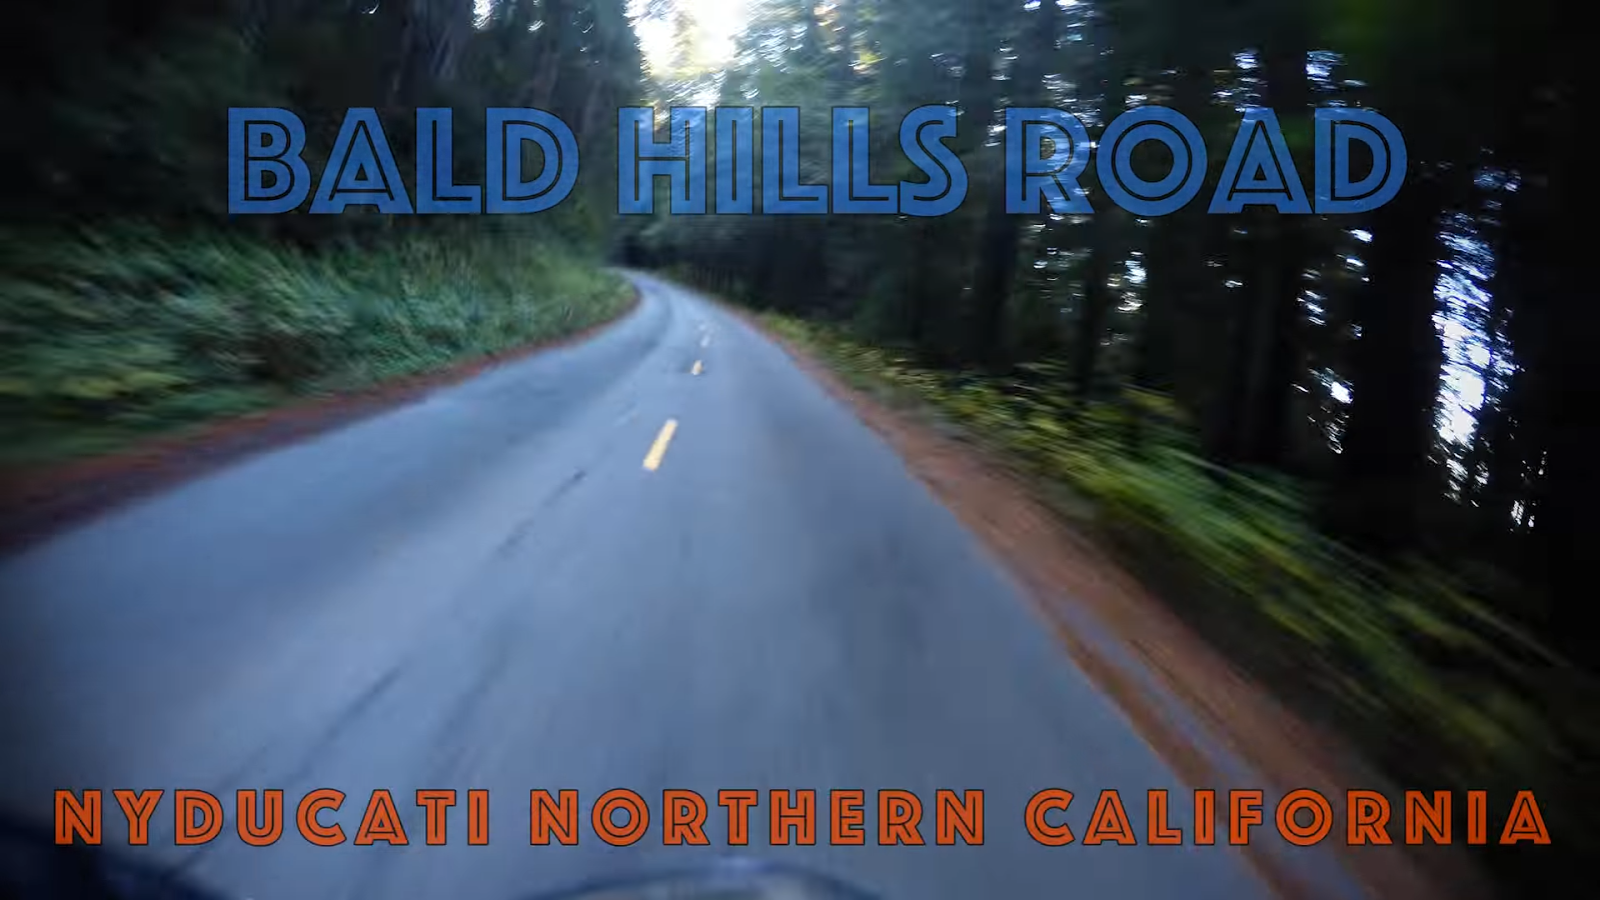 http://www.nyducati.com/2016/12/west-coast-best-roads-in-northern-california.html